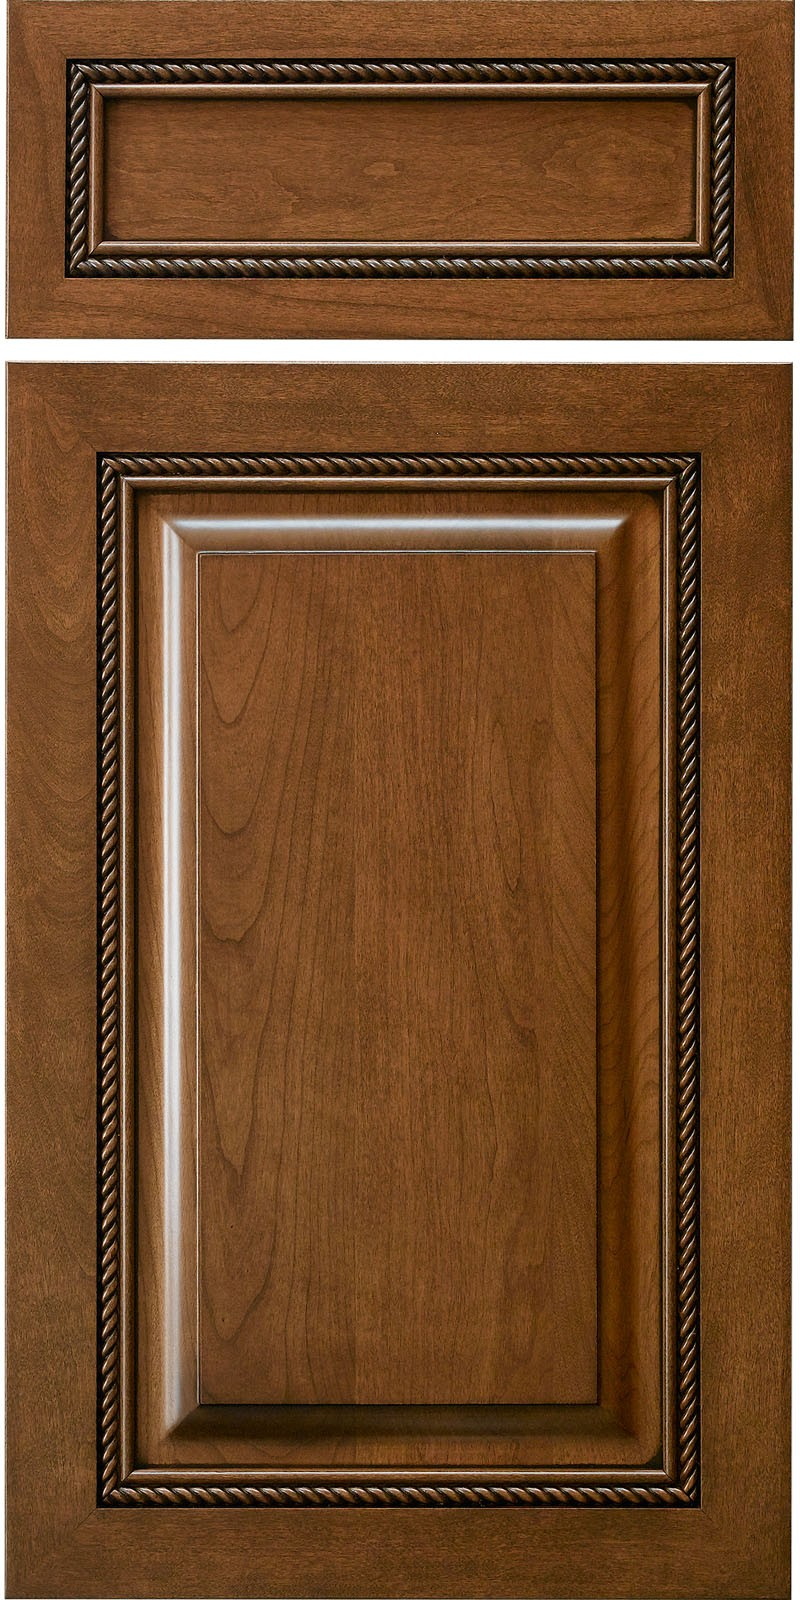 Saxony Solid Wood Materials Cabinet Doors Drawer Fronts Products